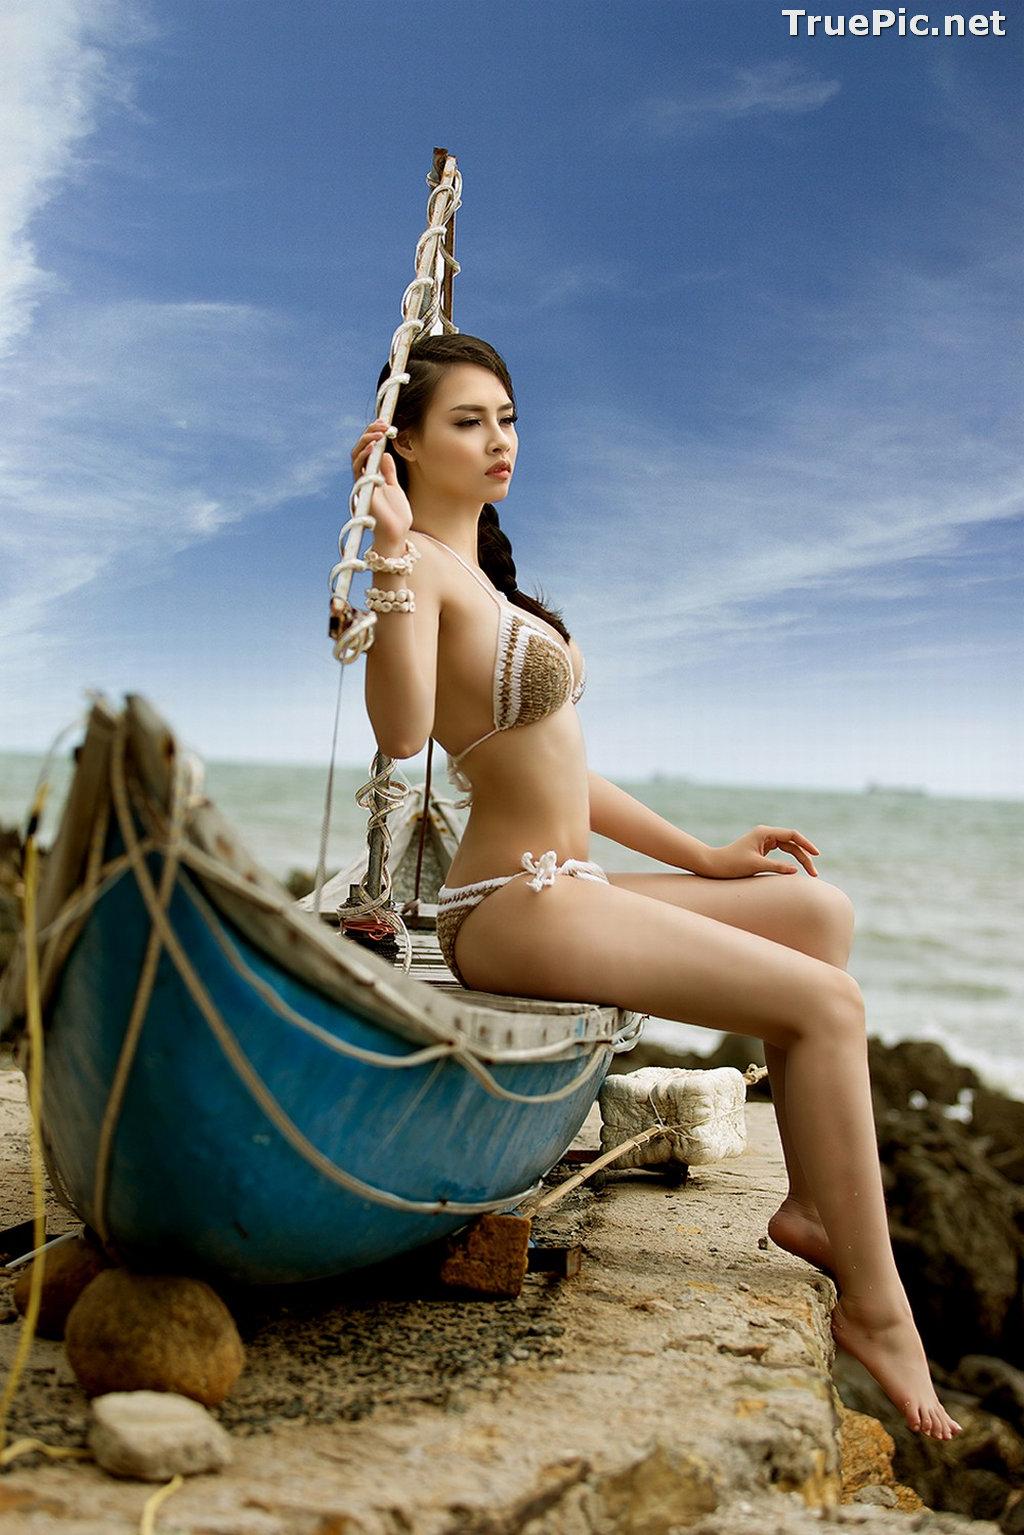 Image Vietnamese Hot Model - Thuy Trang - Wool Bikini Collection - TruePic.net - Picture-2